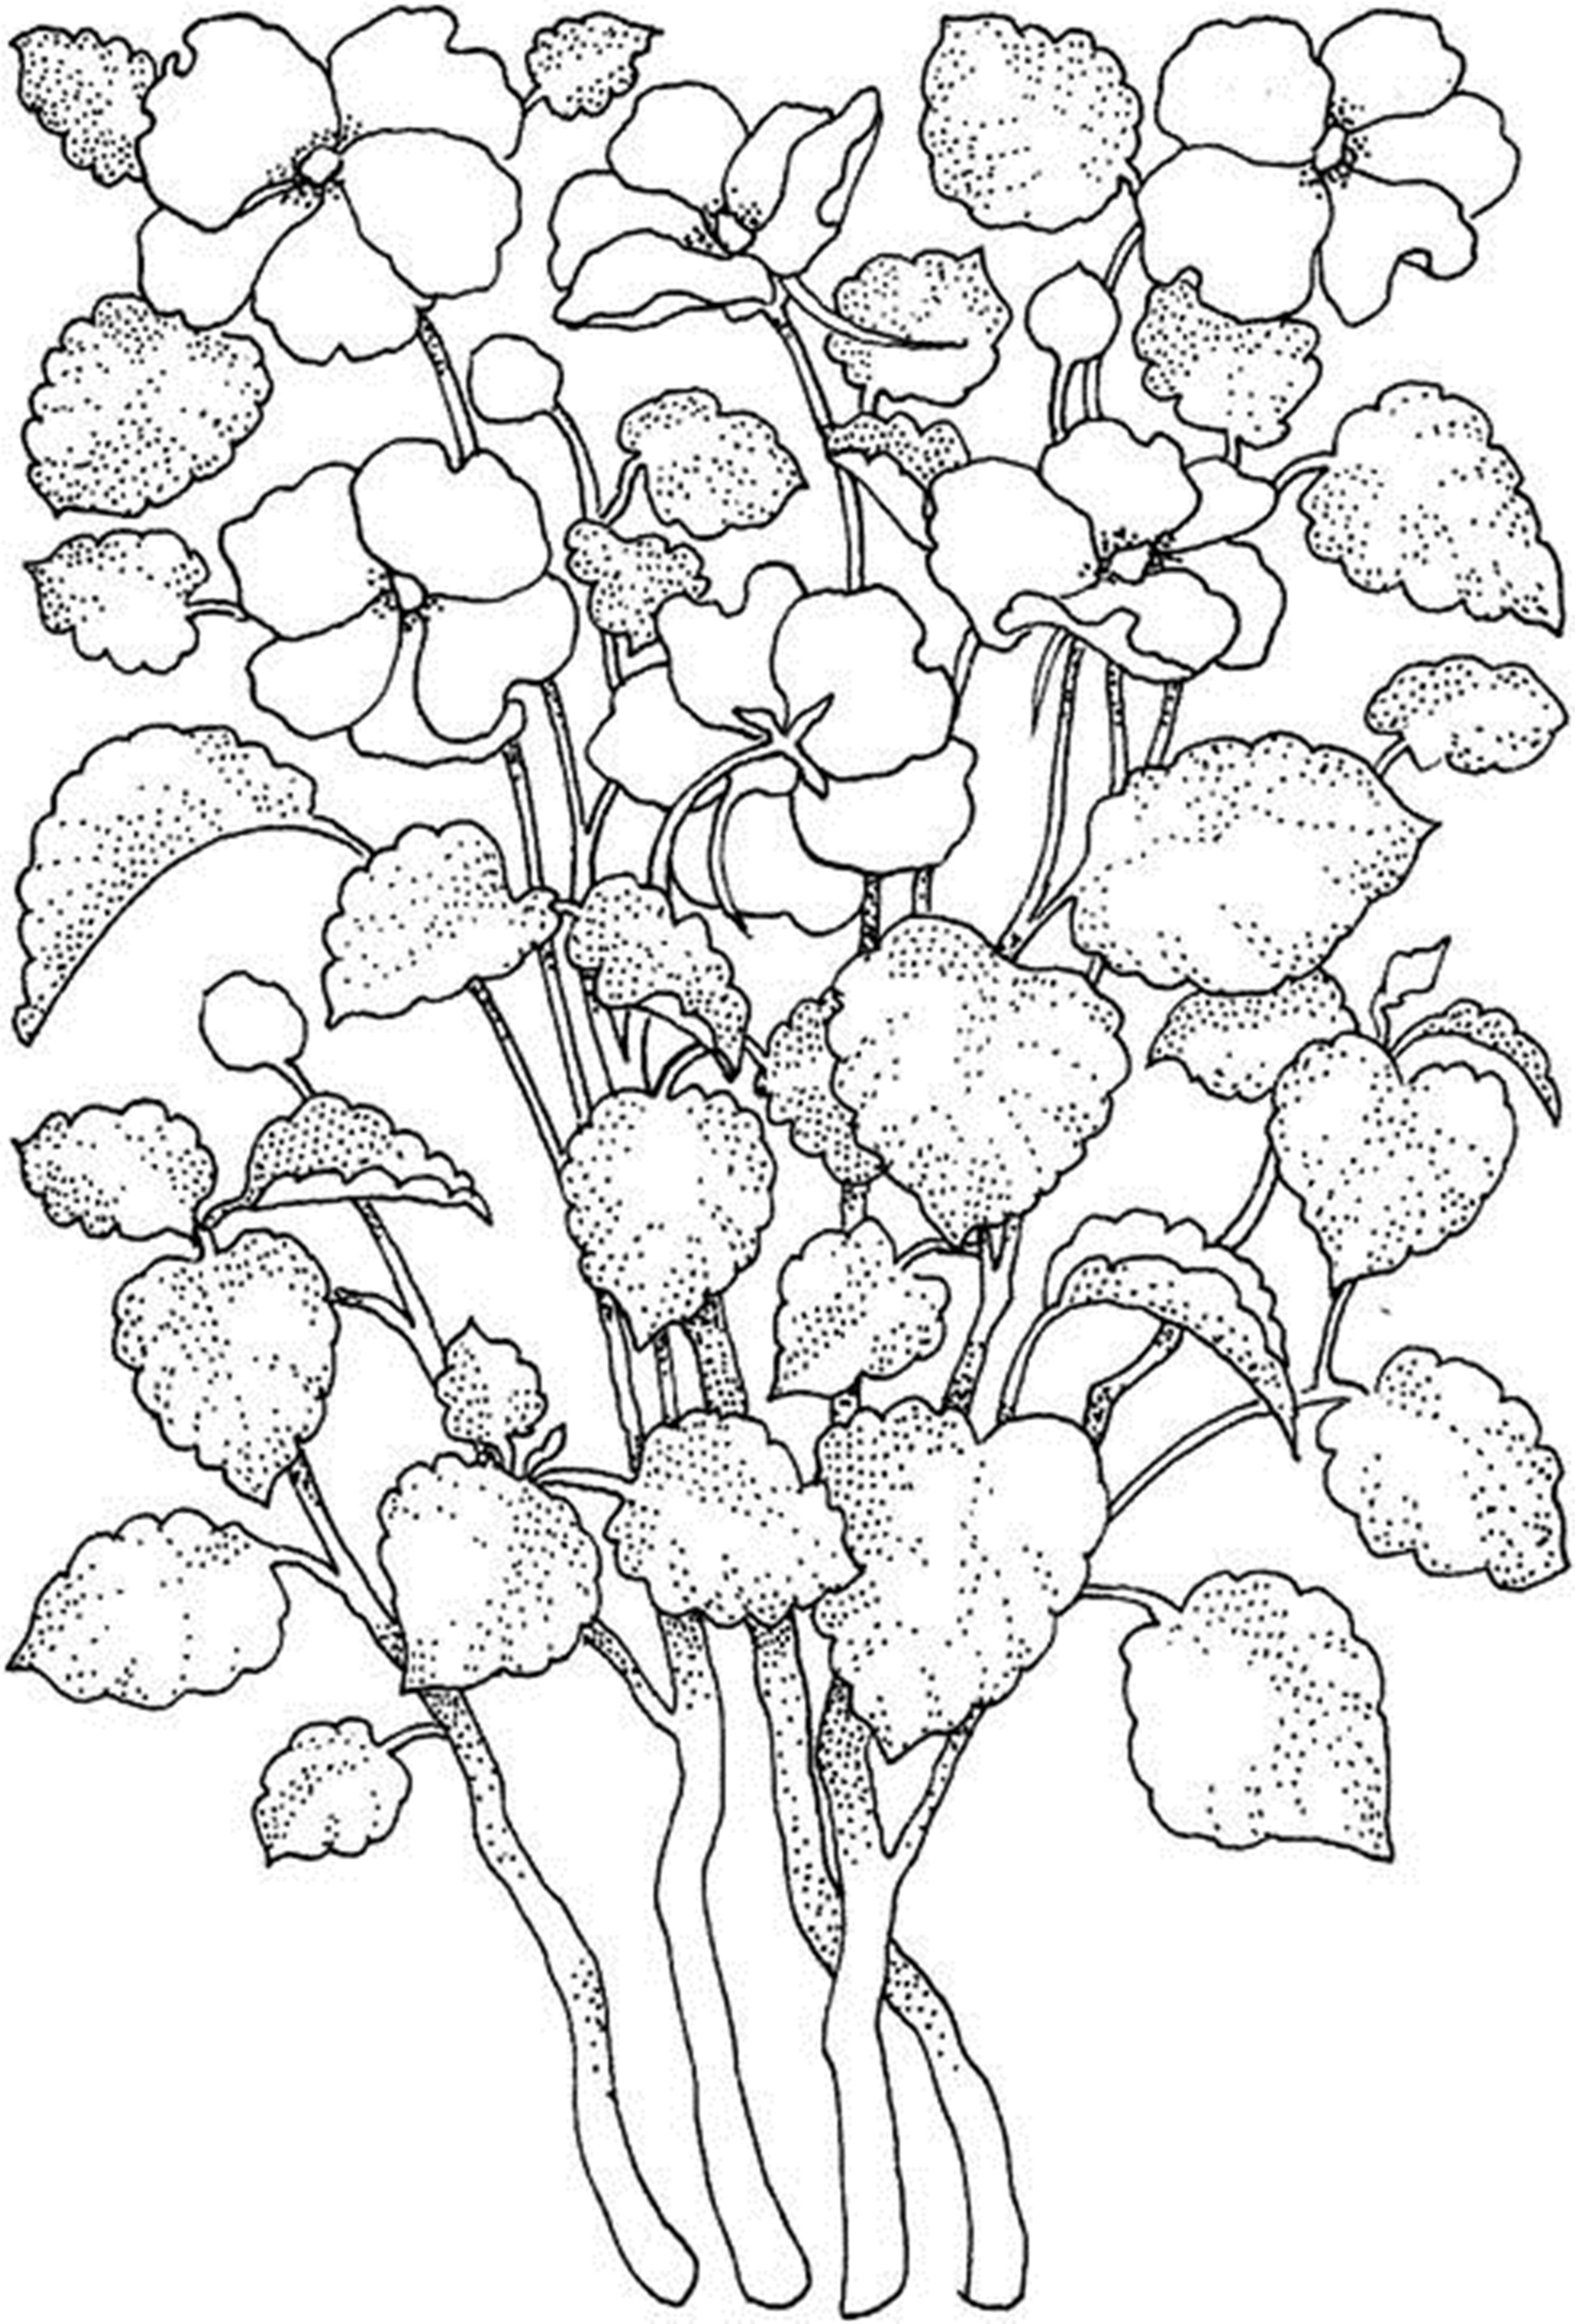 free printable flower coloring pages free printable flower coloring pages for kids best flower printable coloring pages free